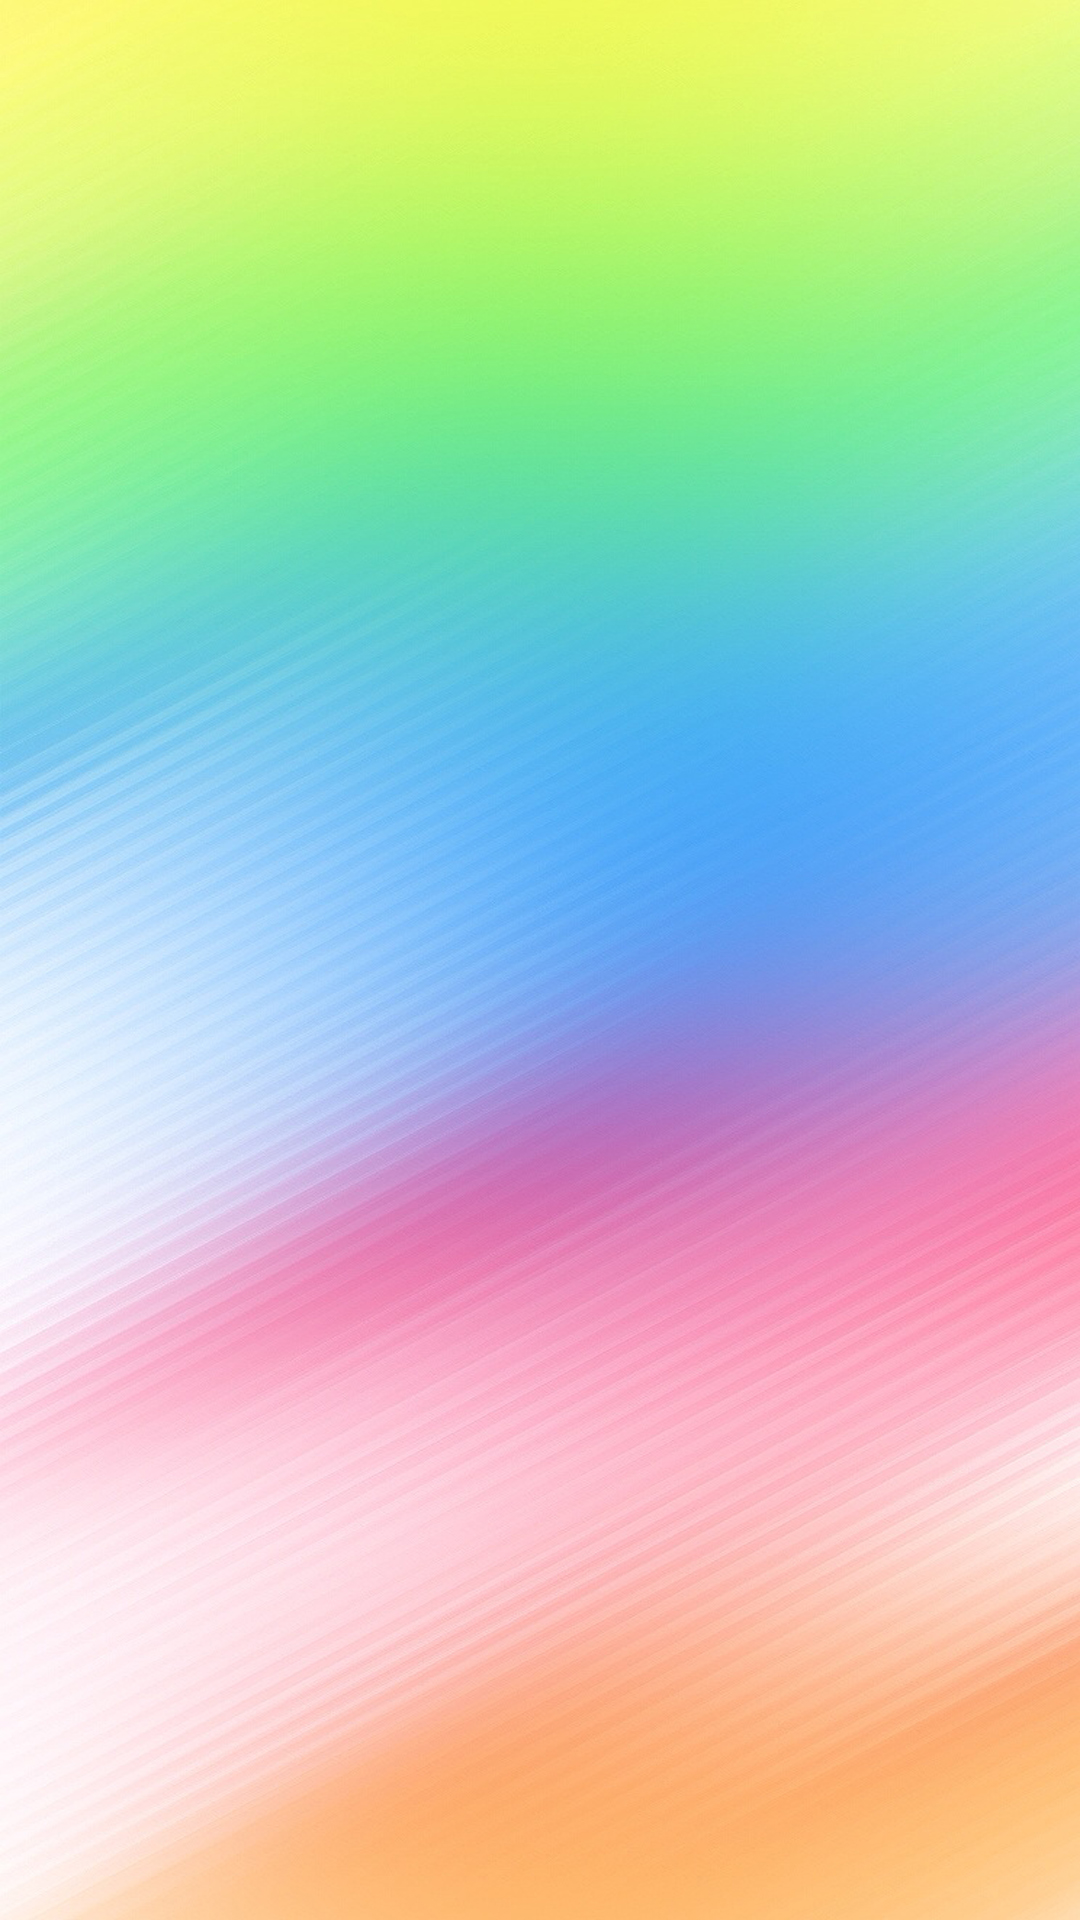 iOS 8 Color Wallpapers android wallpapers download 1080x1920